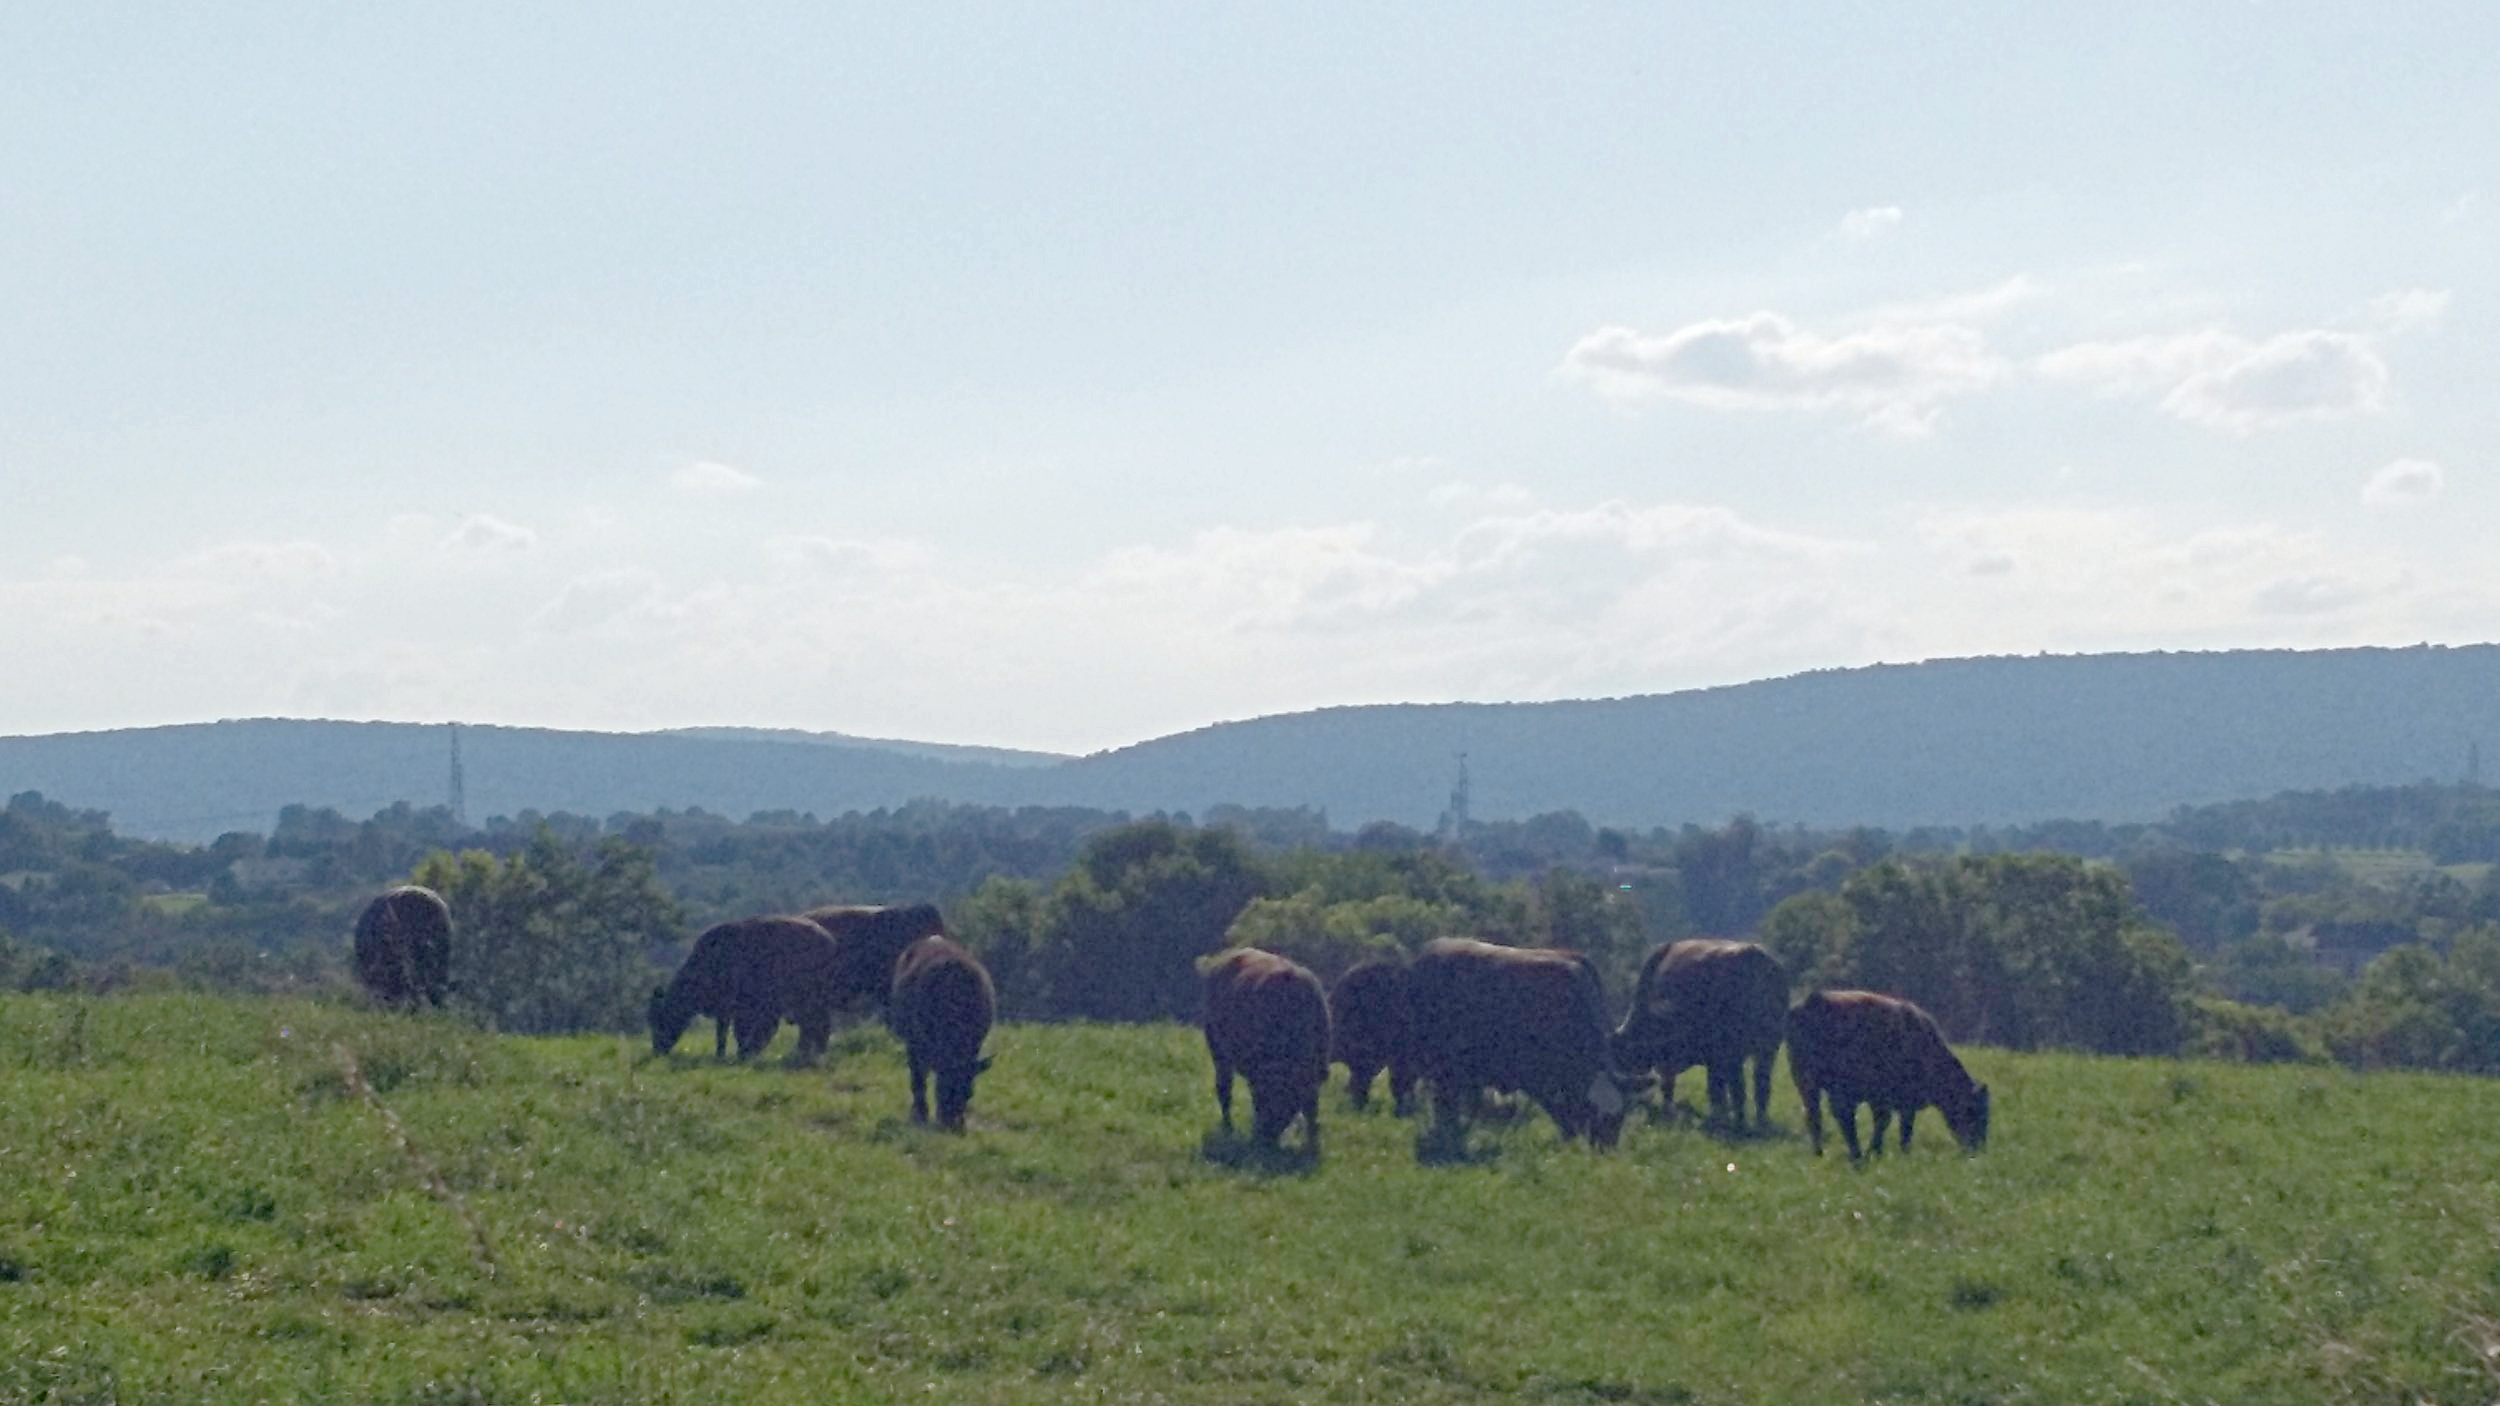 Our grass is so delicious that our steers choose eating over admiring the views.